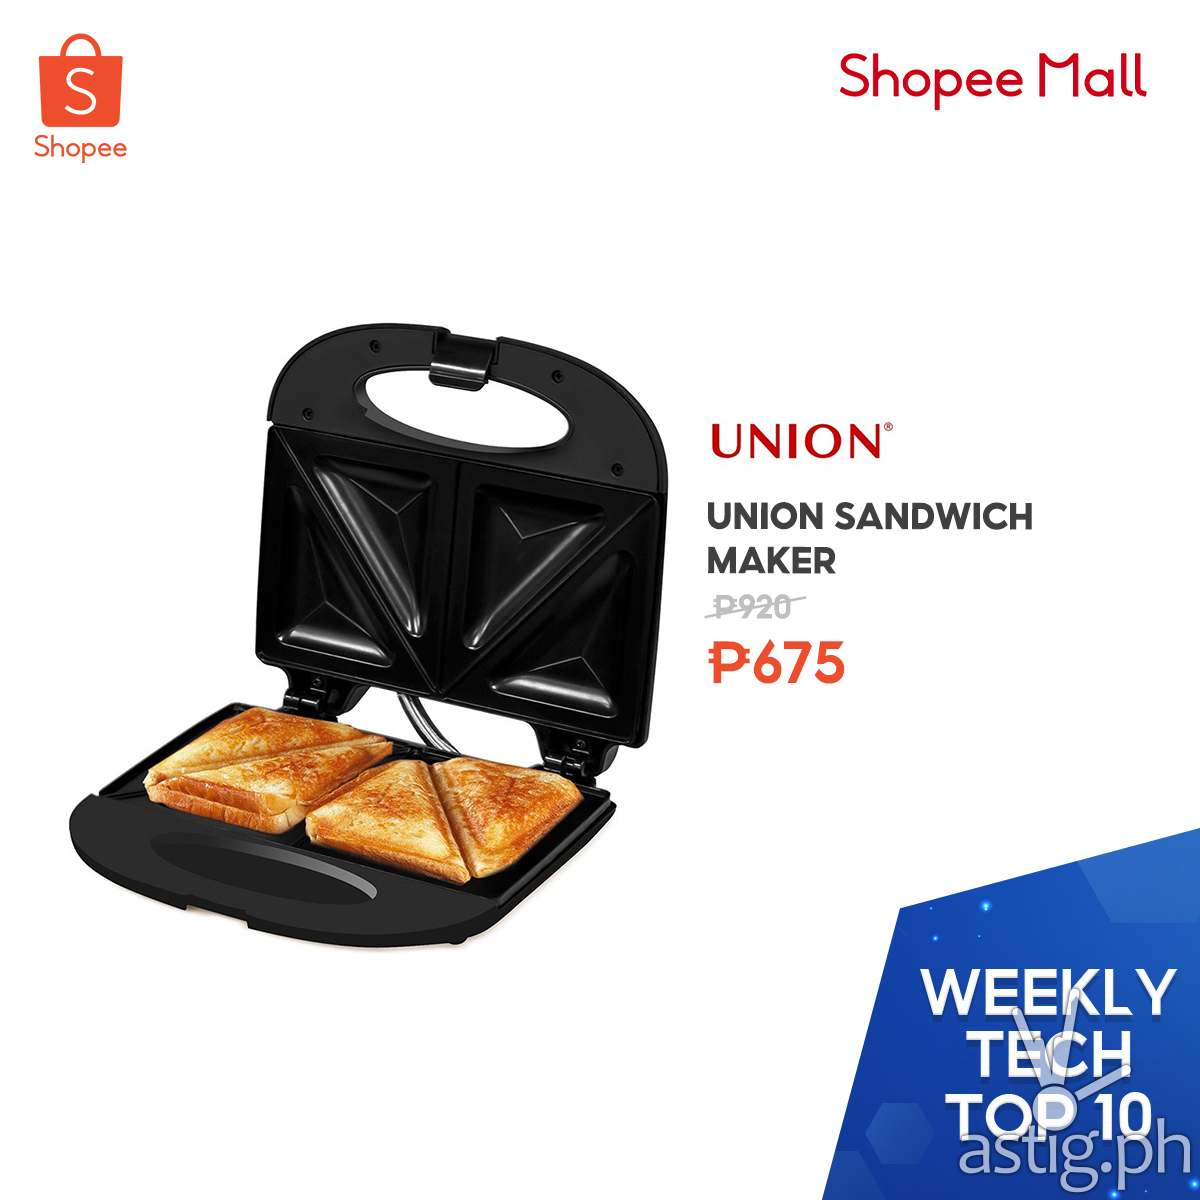 Union Sandwich Maker